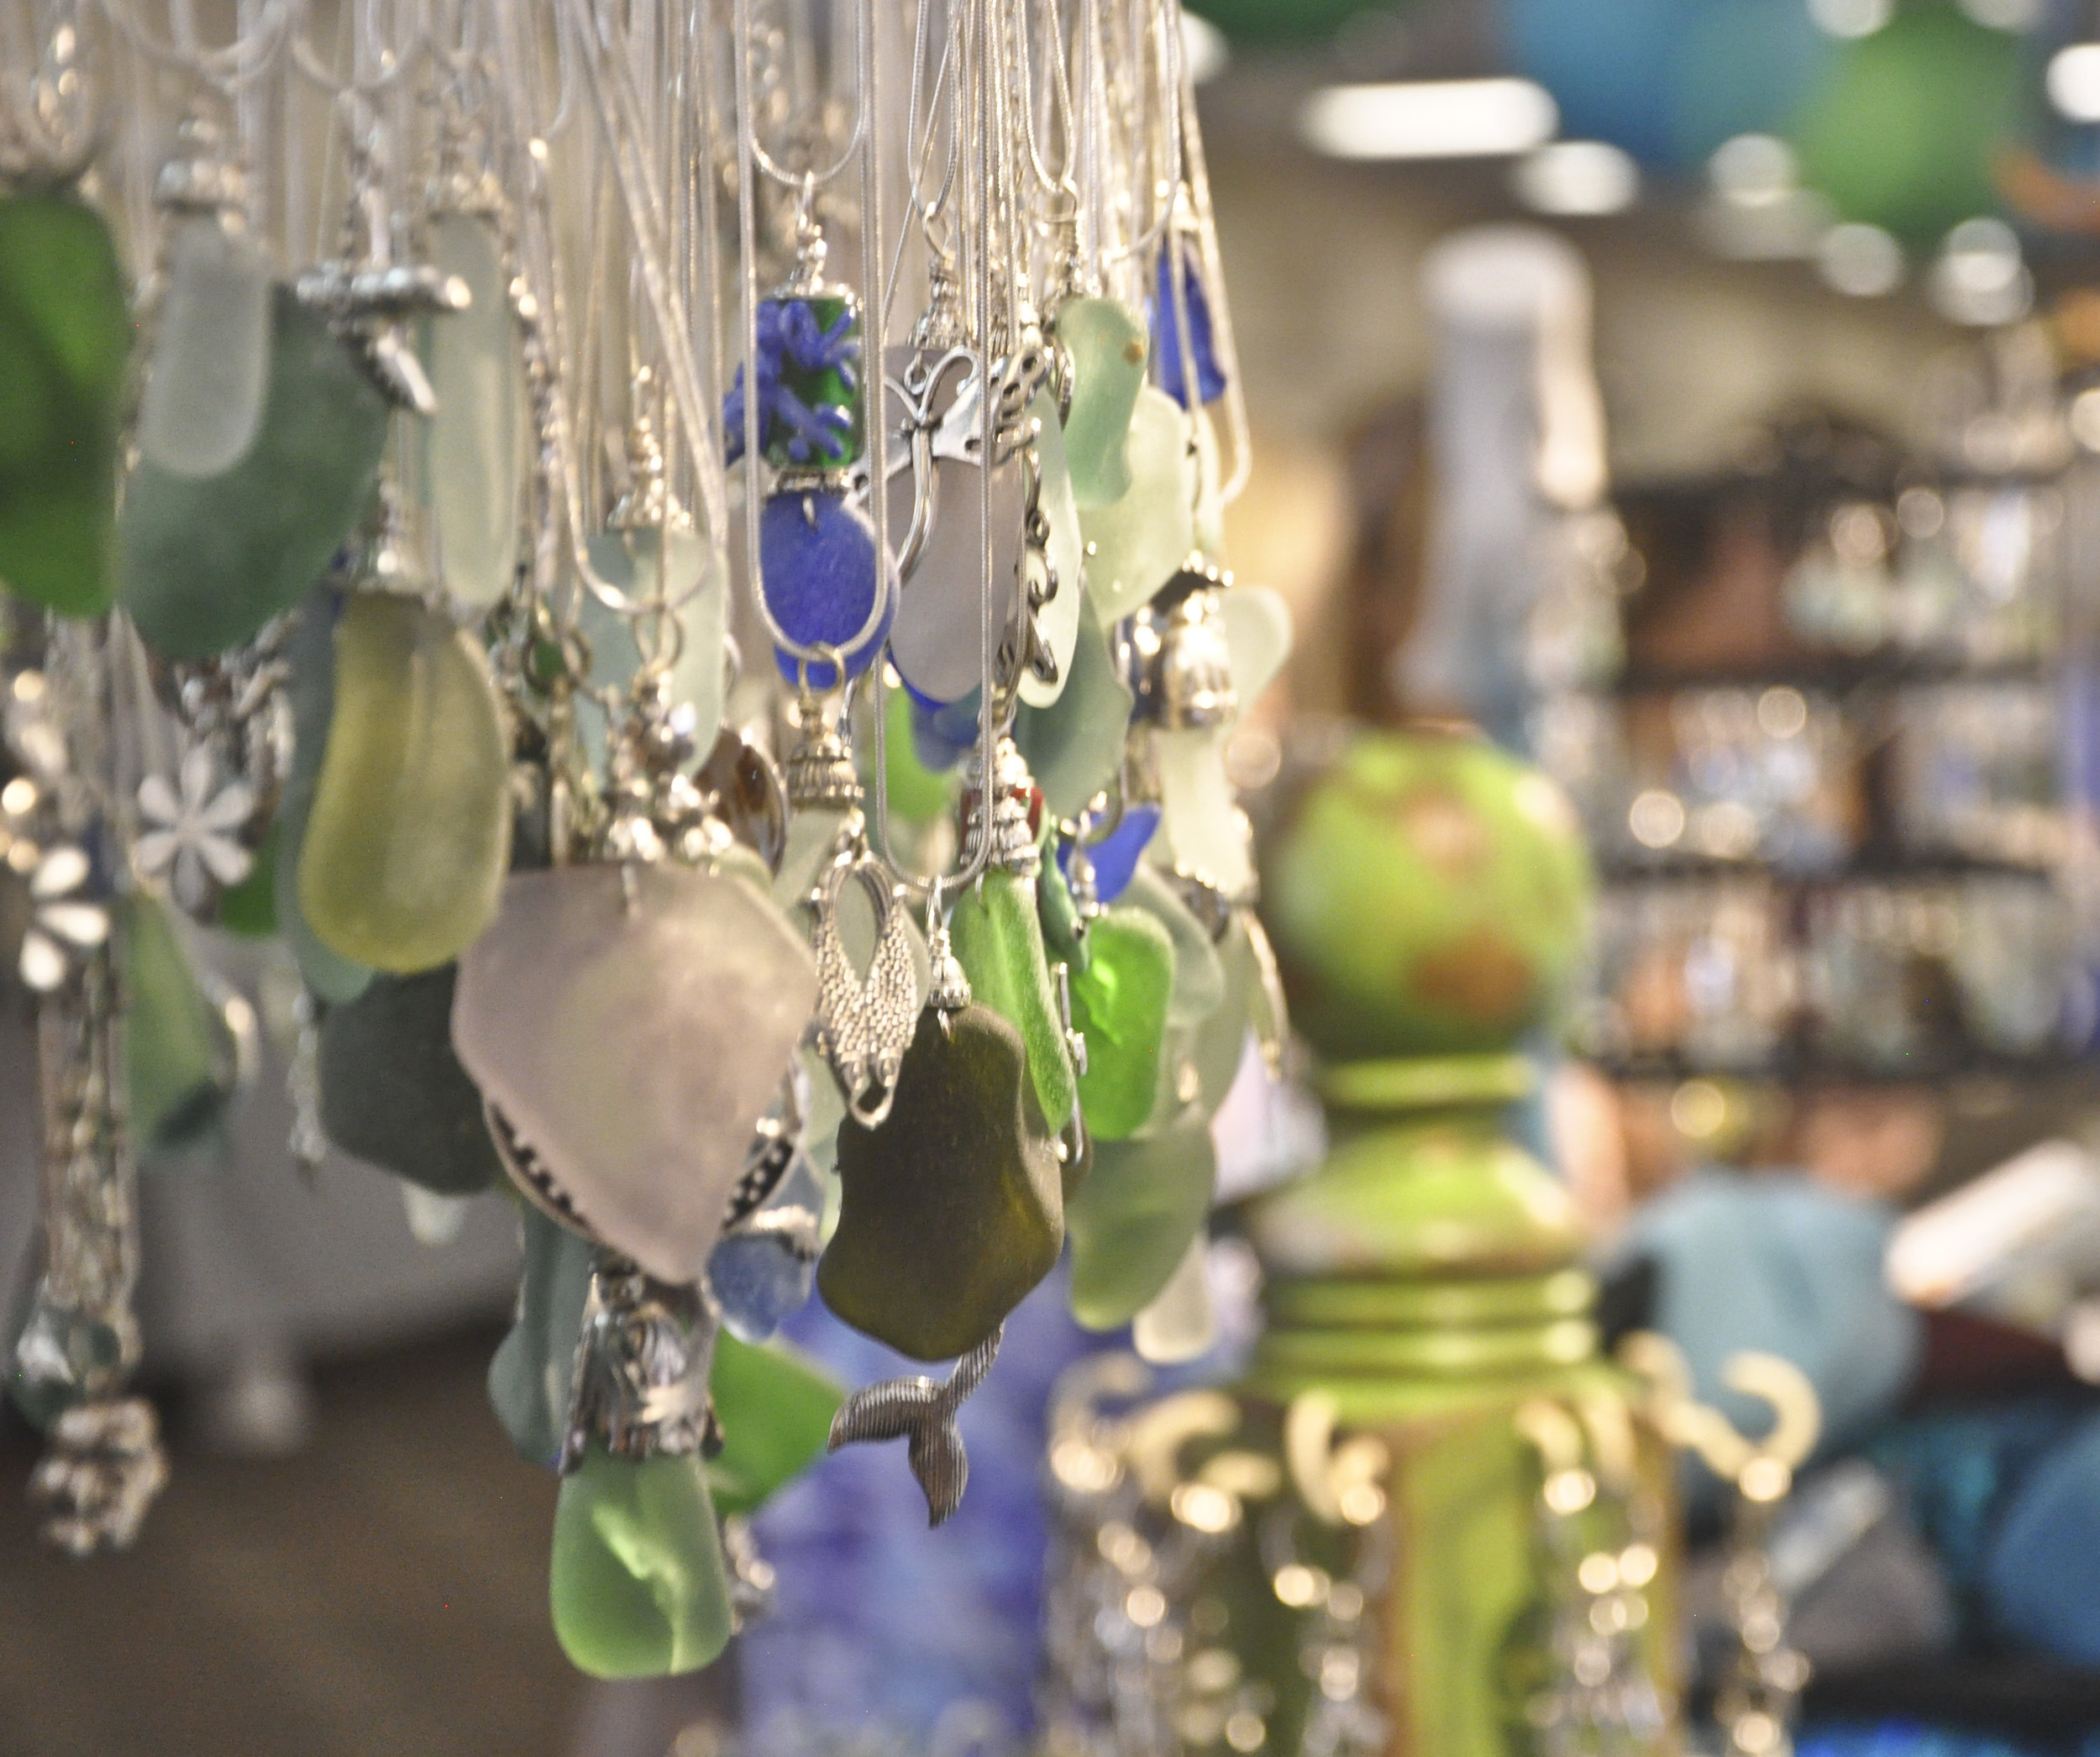 Beach Street Sea Glass photo by Heidi Kirkpatrick